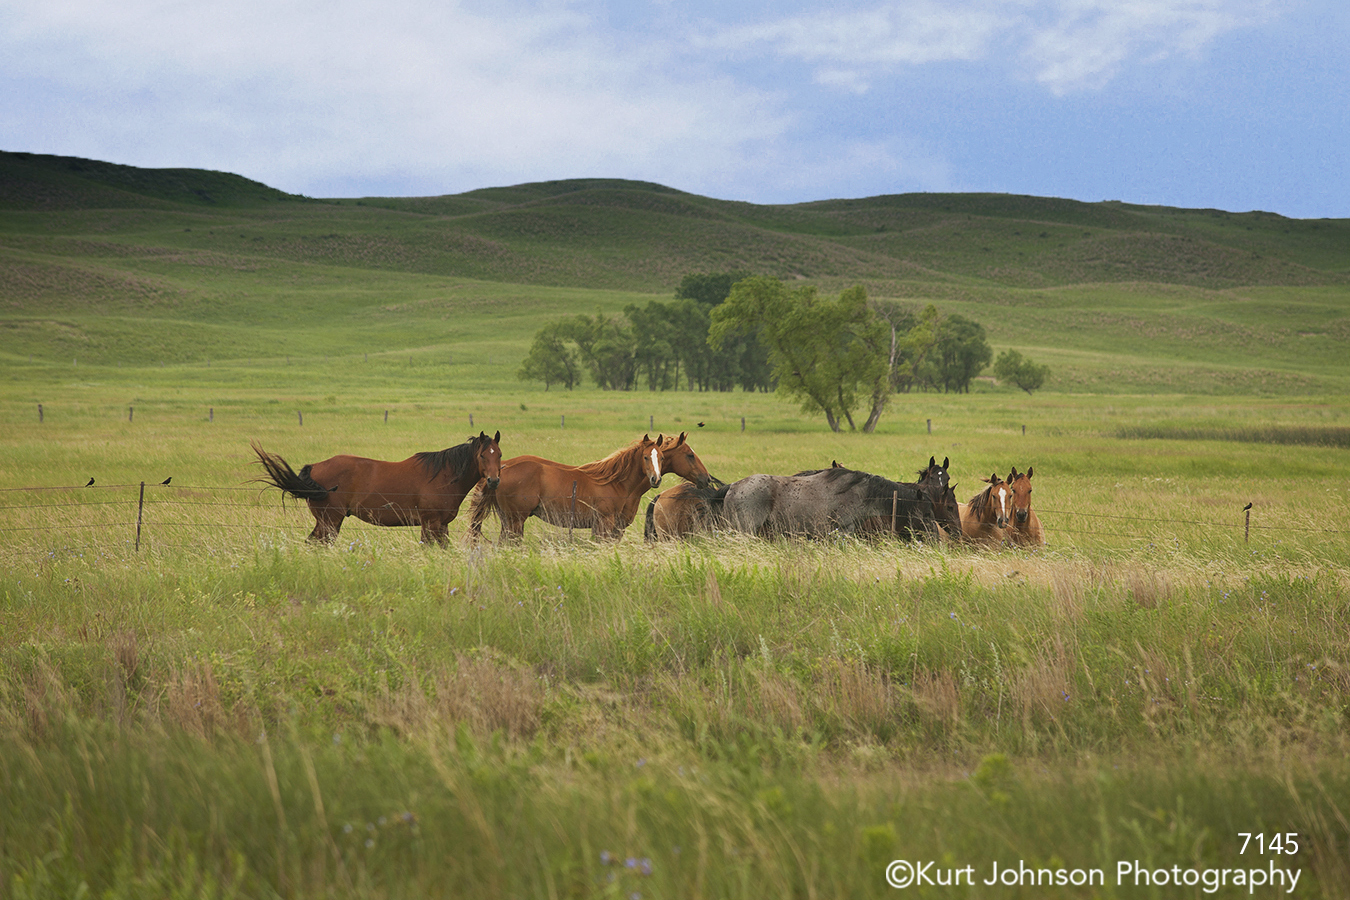 landscape field horses wildlife midwest